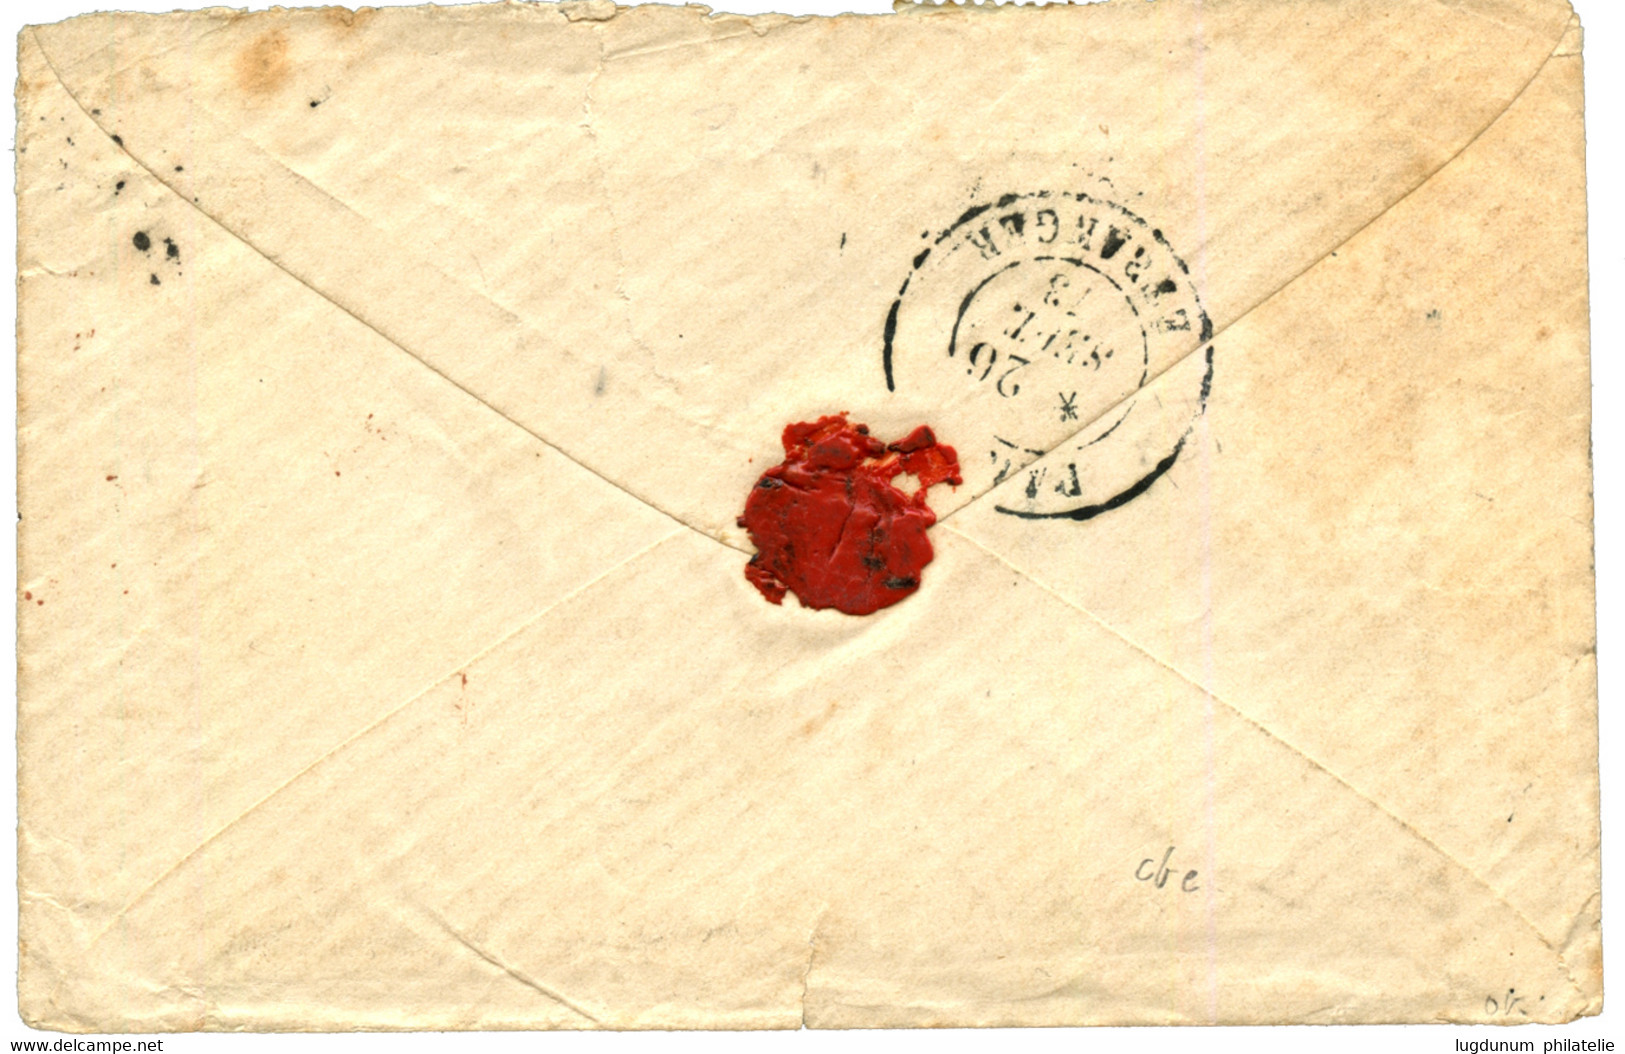 SIAM - THAILAND : 1873 FRANCE 25c (x4) On Envelope From GARE DE COMPIEGNE To BANGKOK (SIAM). Extremely Scarce PRE-U.P.U  - Siam